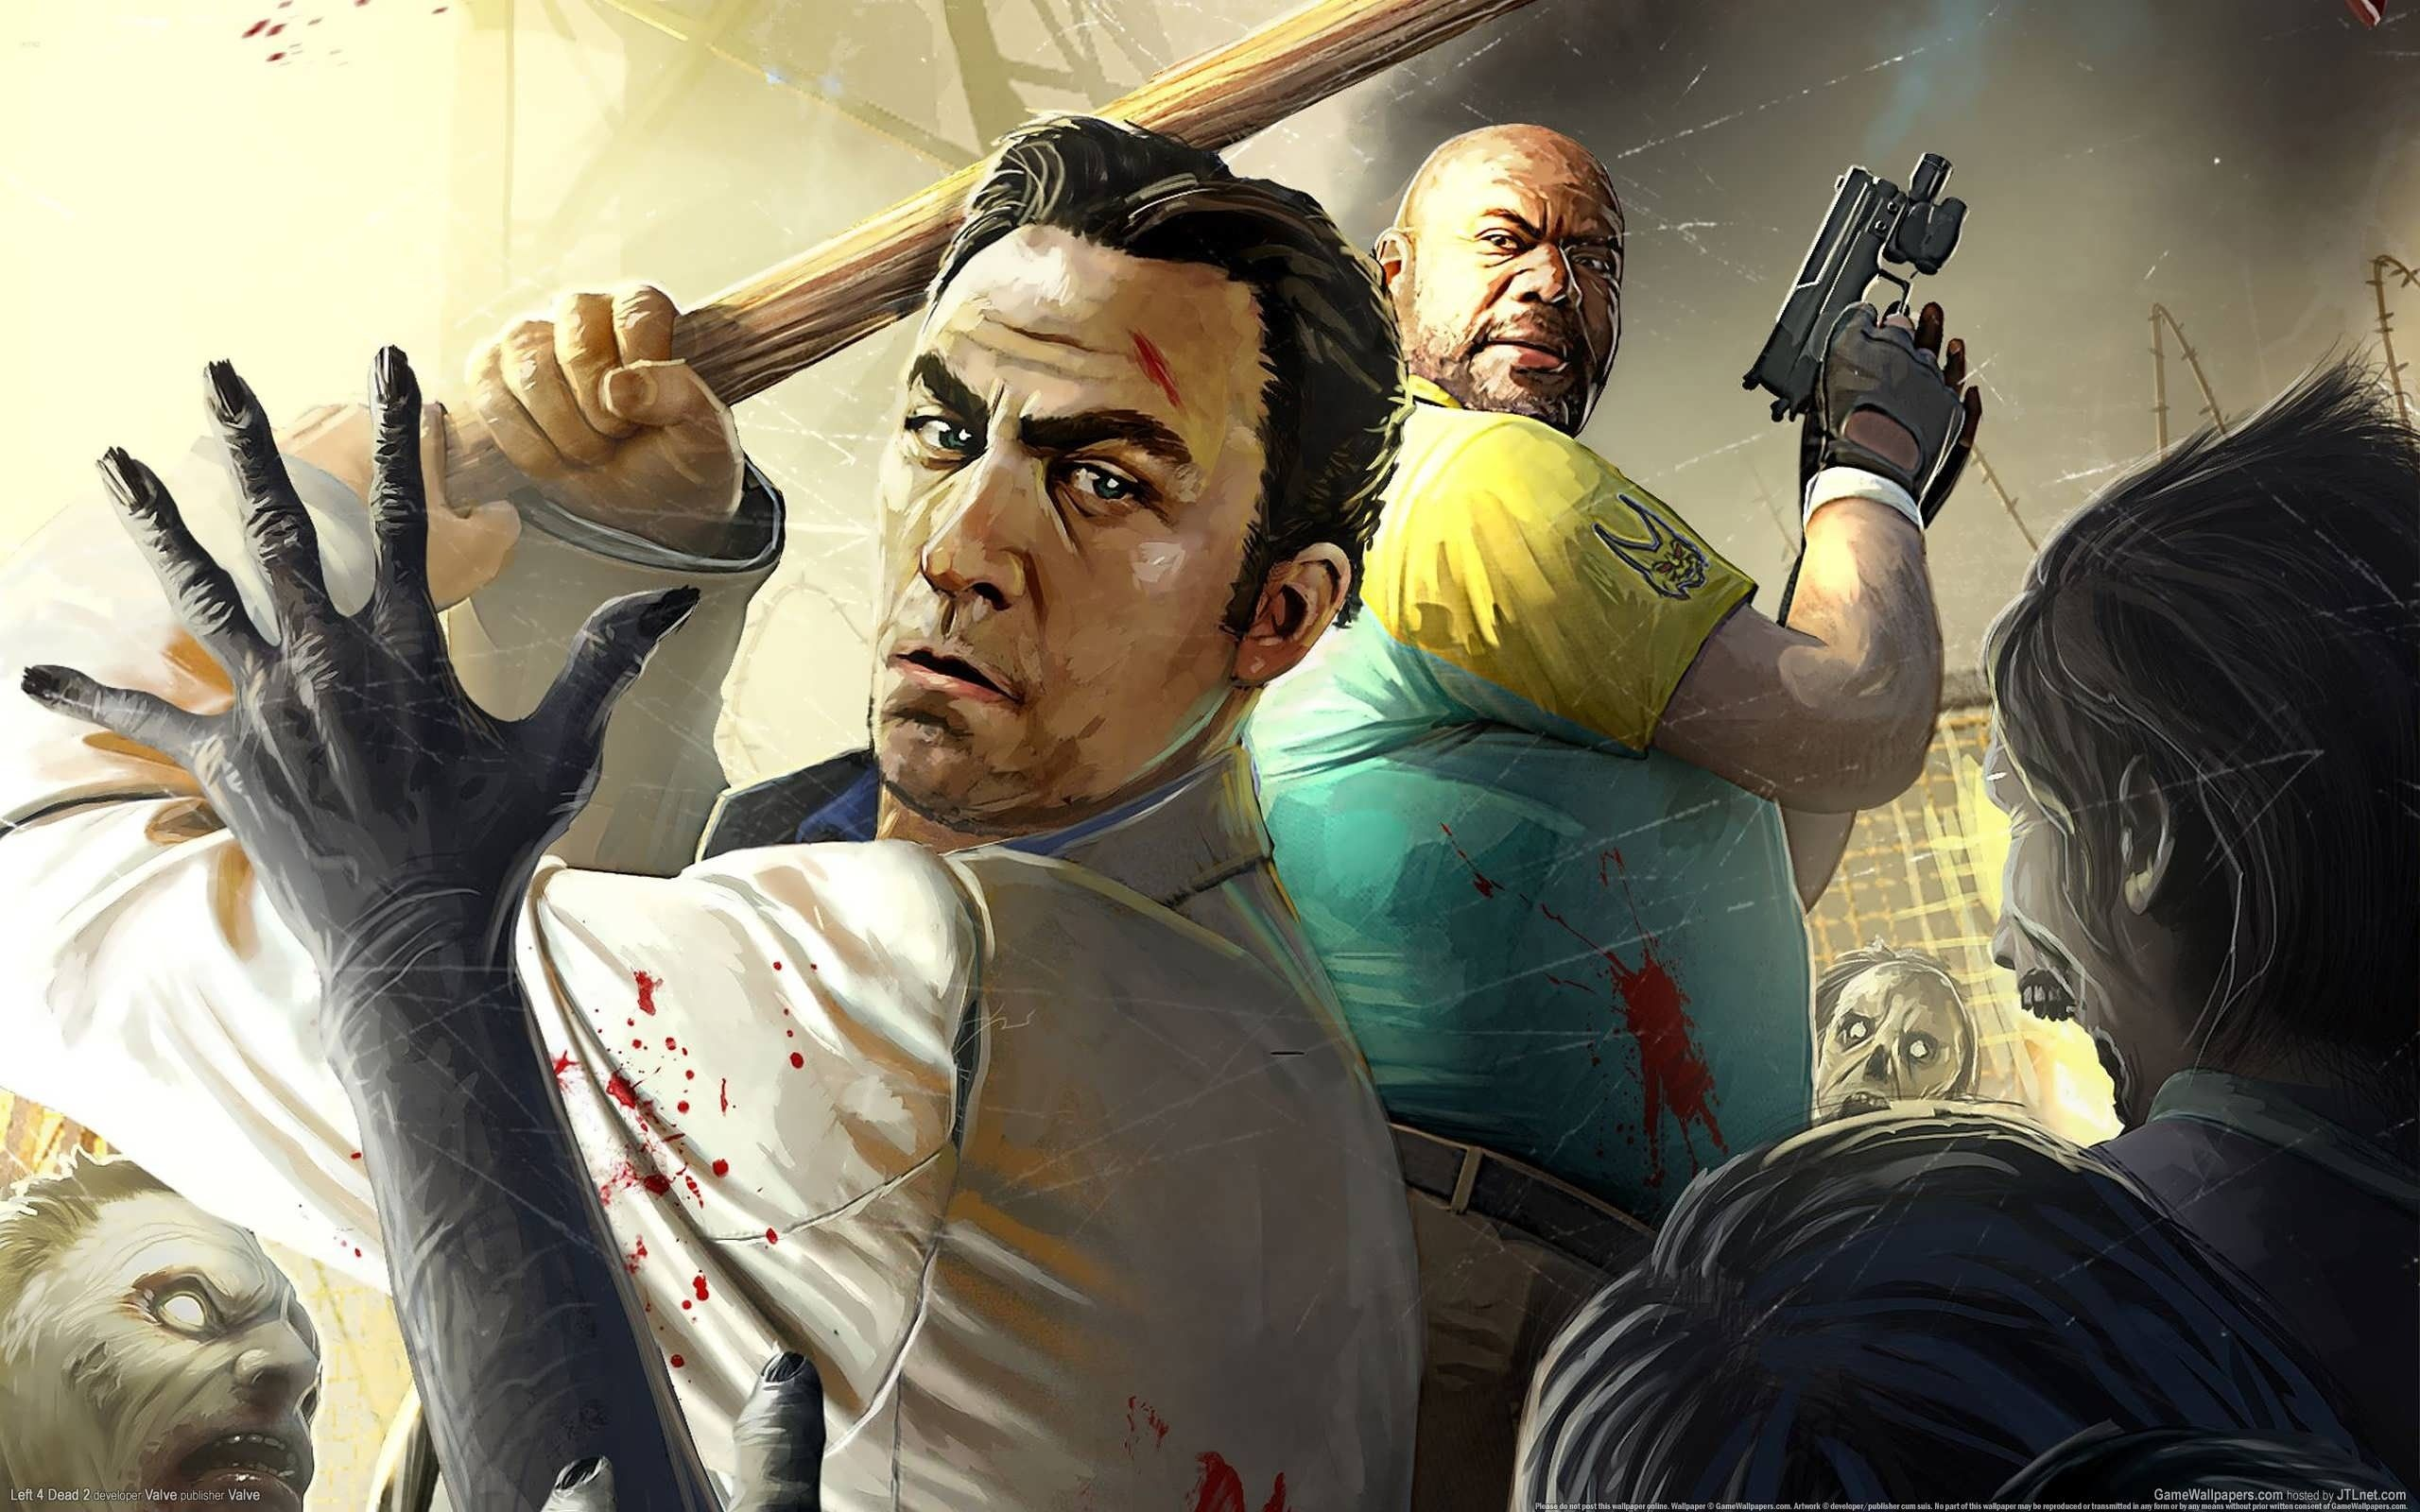 Wallpapers For Desktop Left 4 Dead 2 Image By Anastasia Thomas